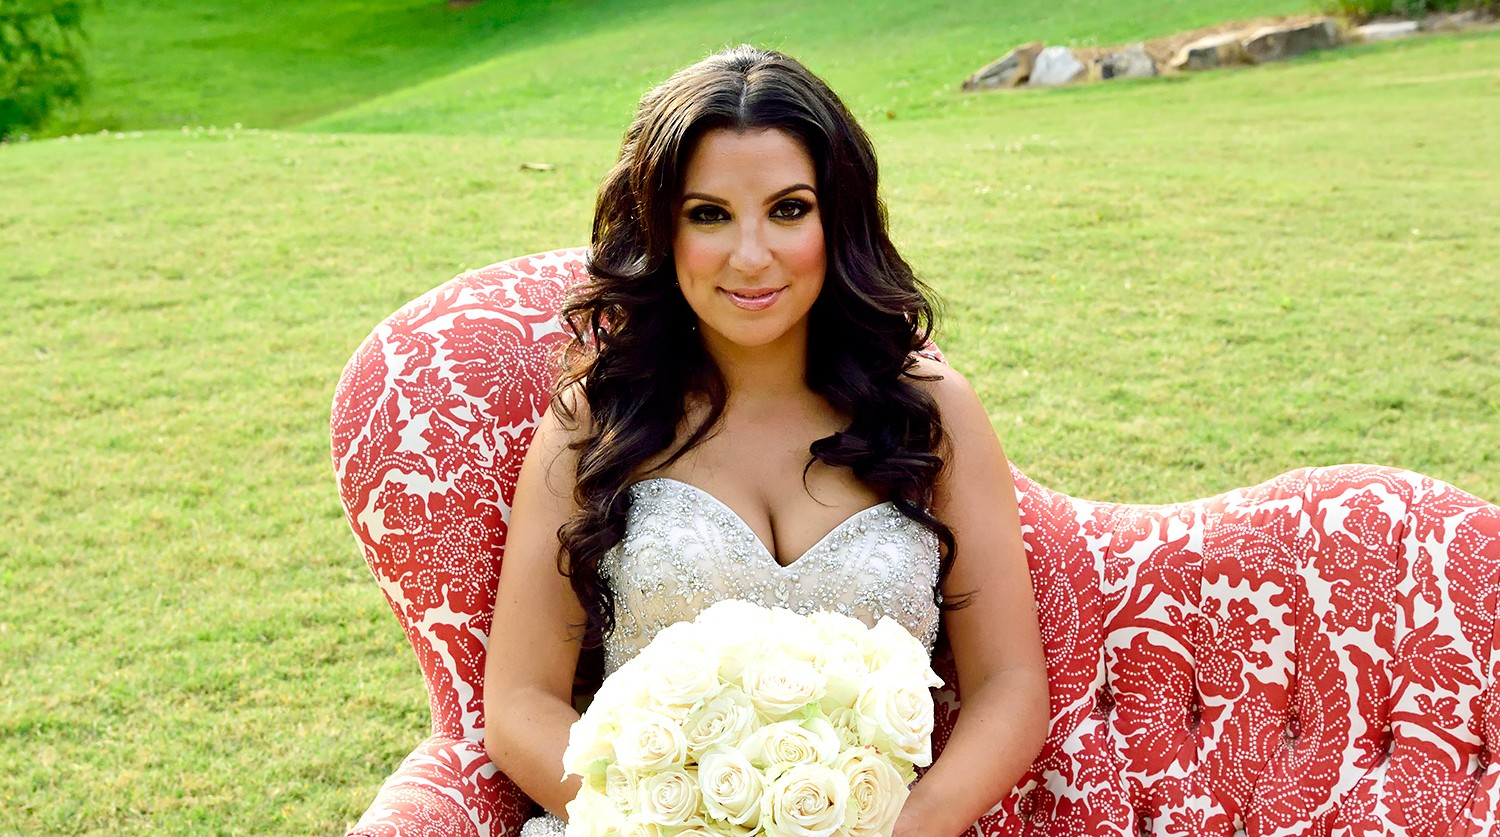 Married at First Sight\' Wedding Dresses: Get the Looks!